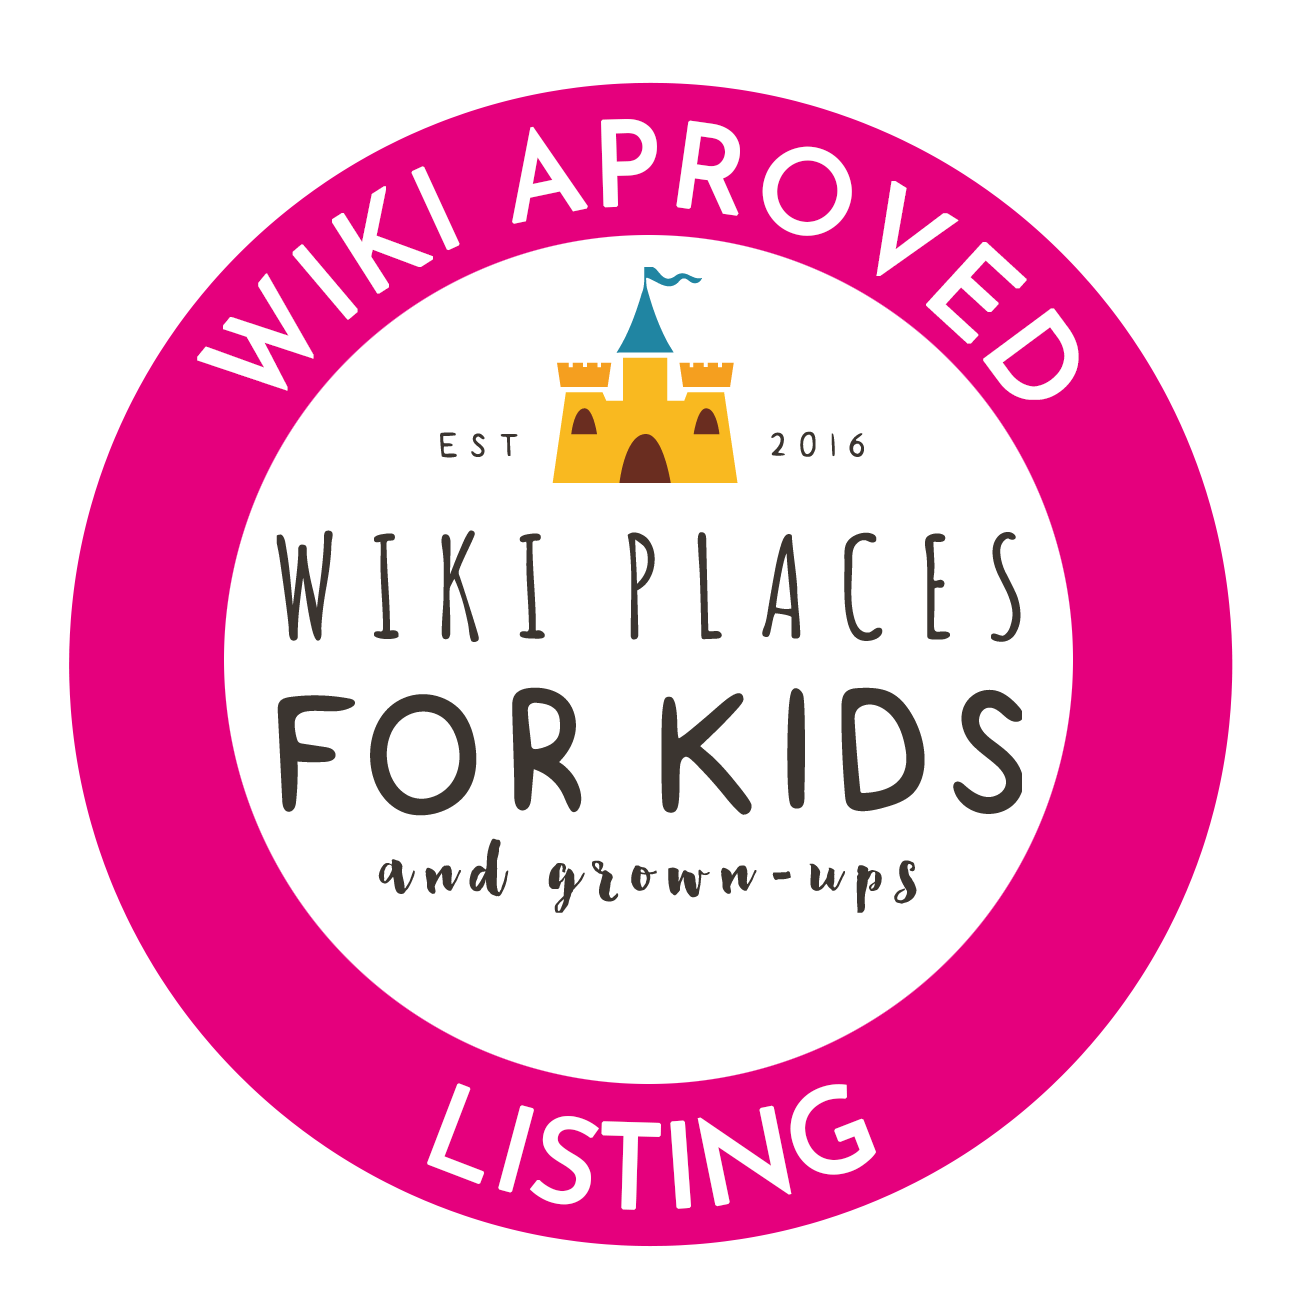 Wiki Places For Kids Search For A Wiki Place